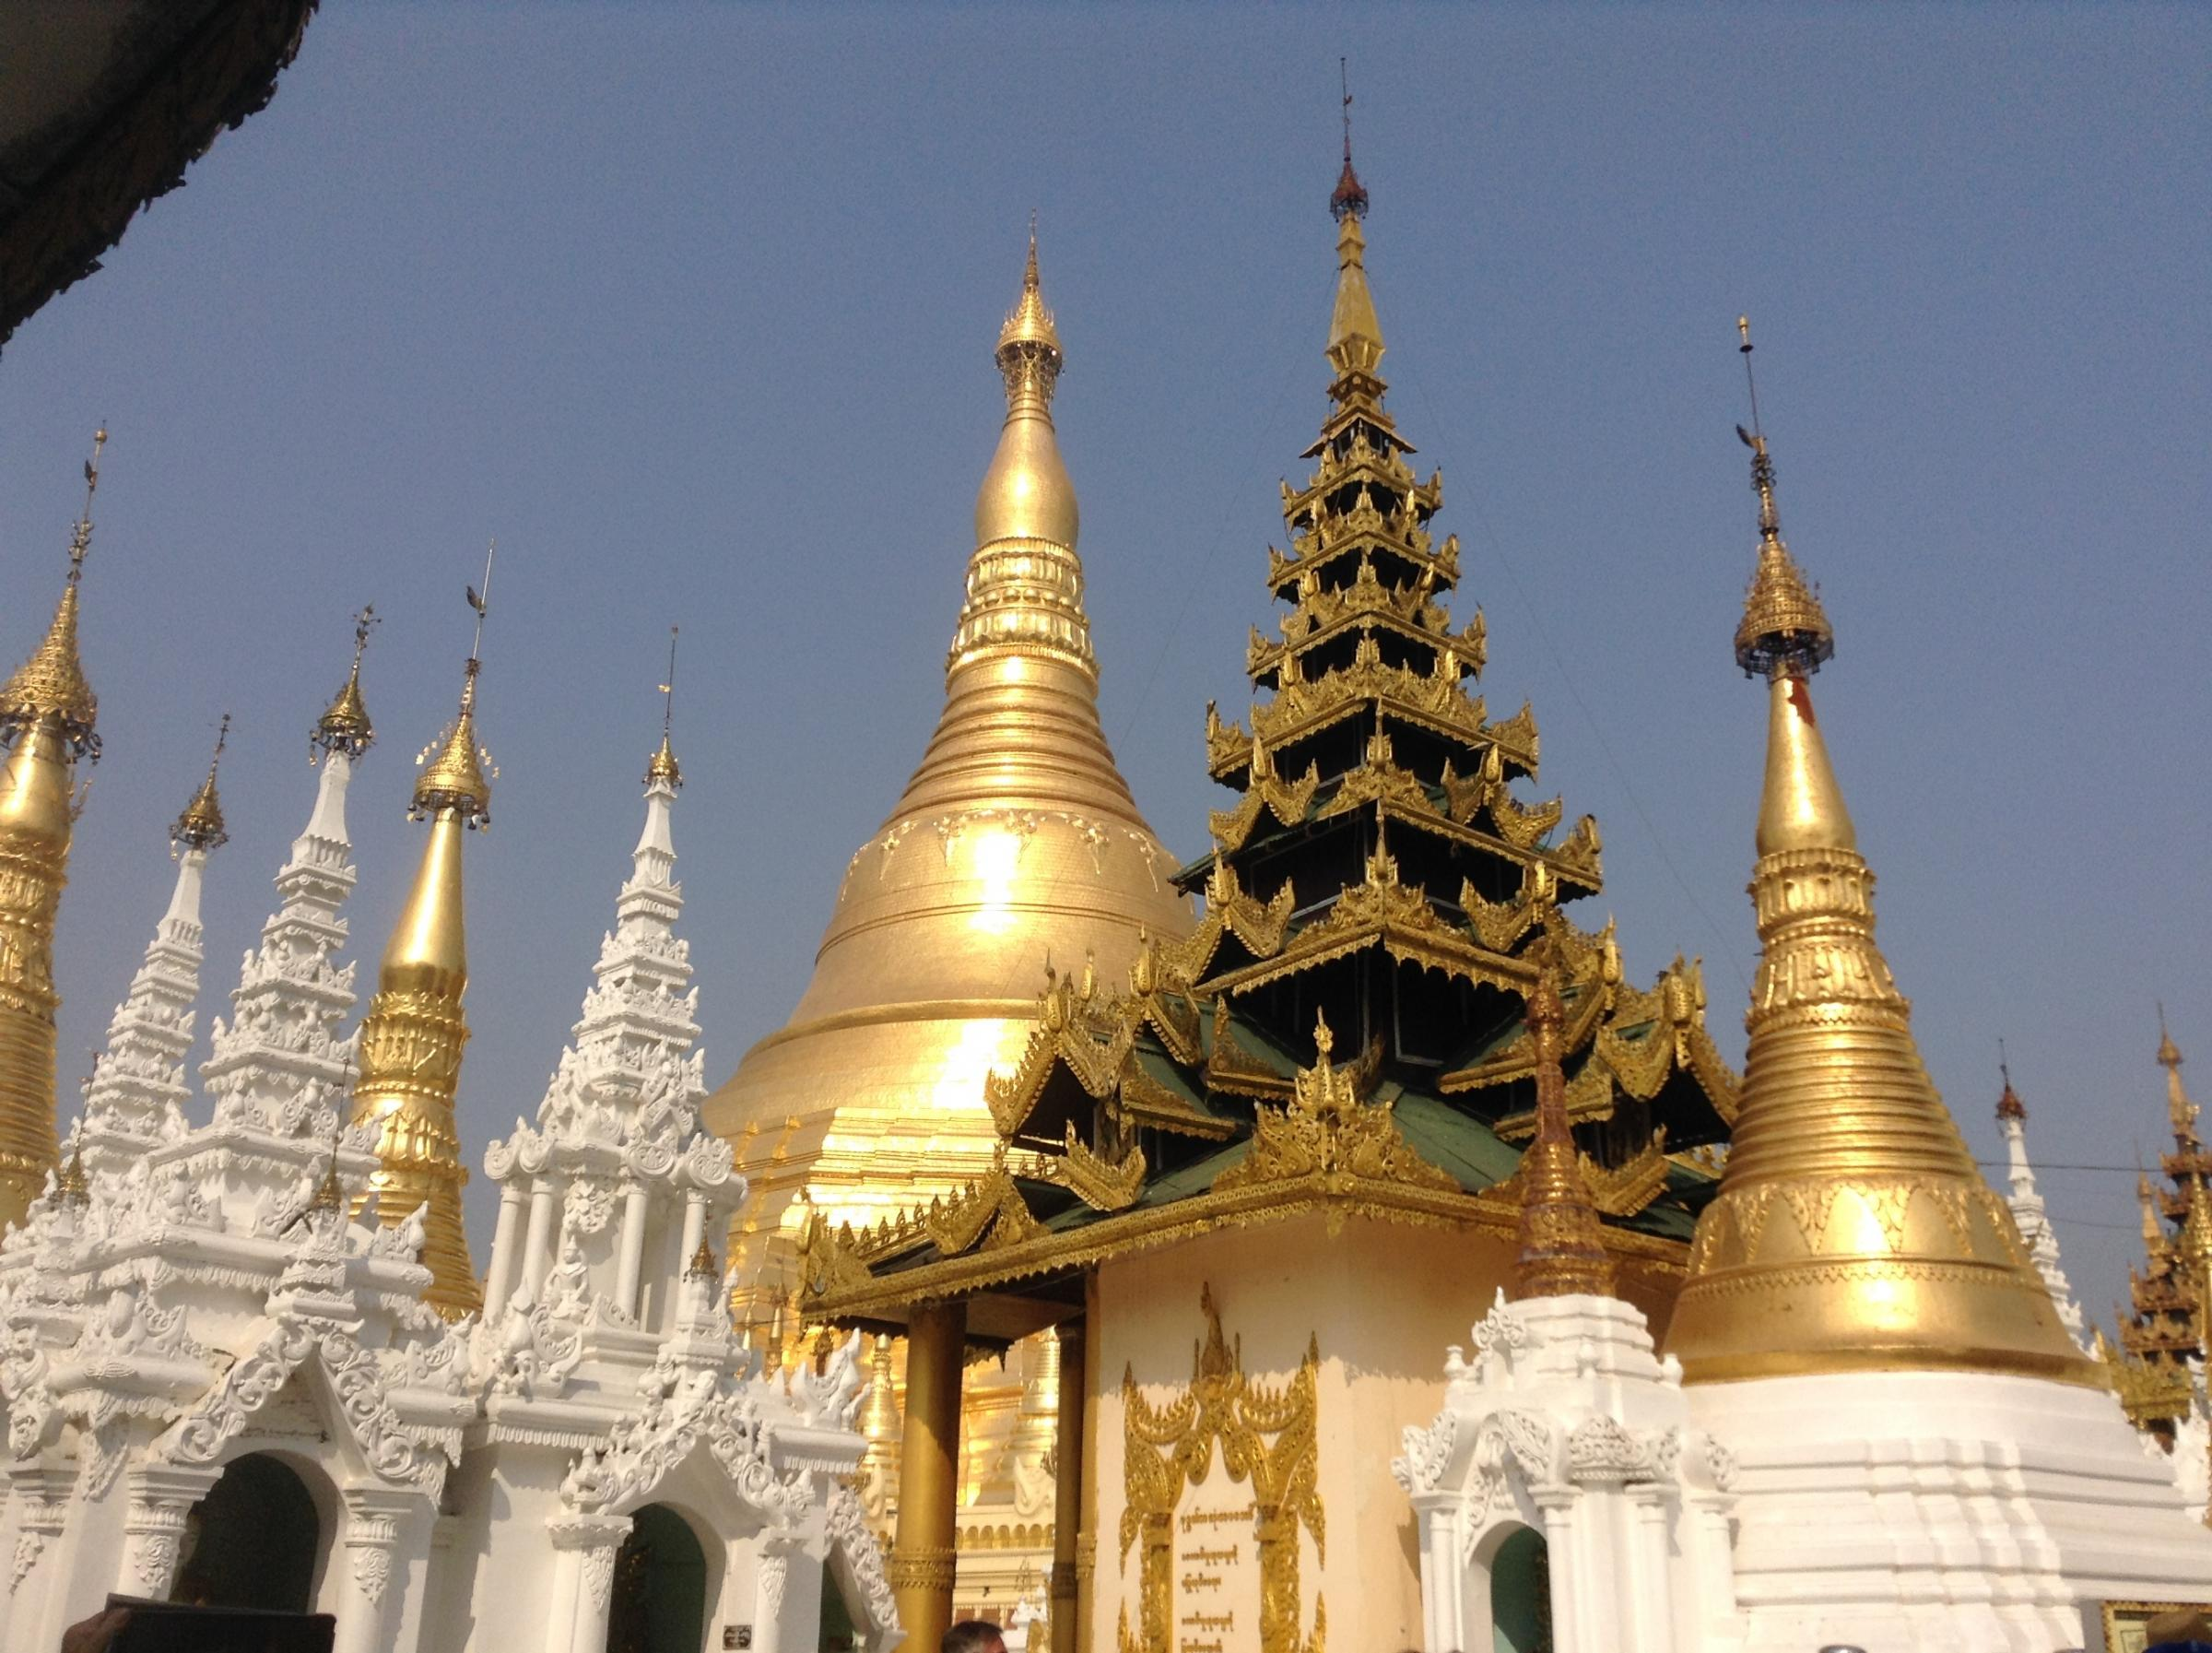 Sights, sounds and splendours of the orient